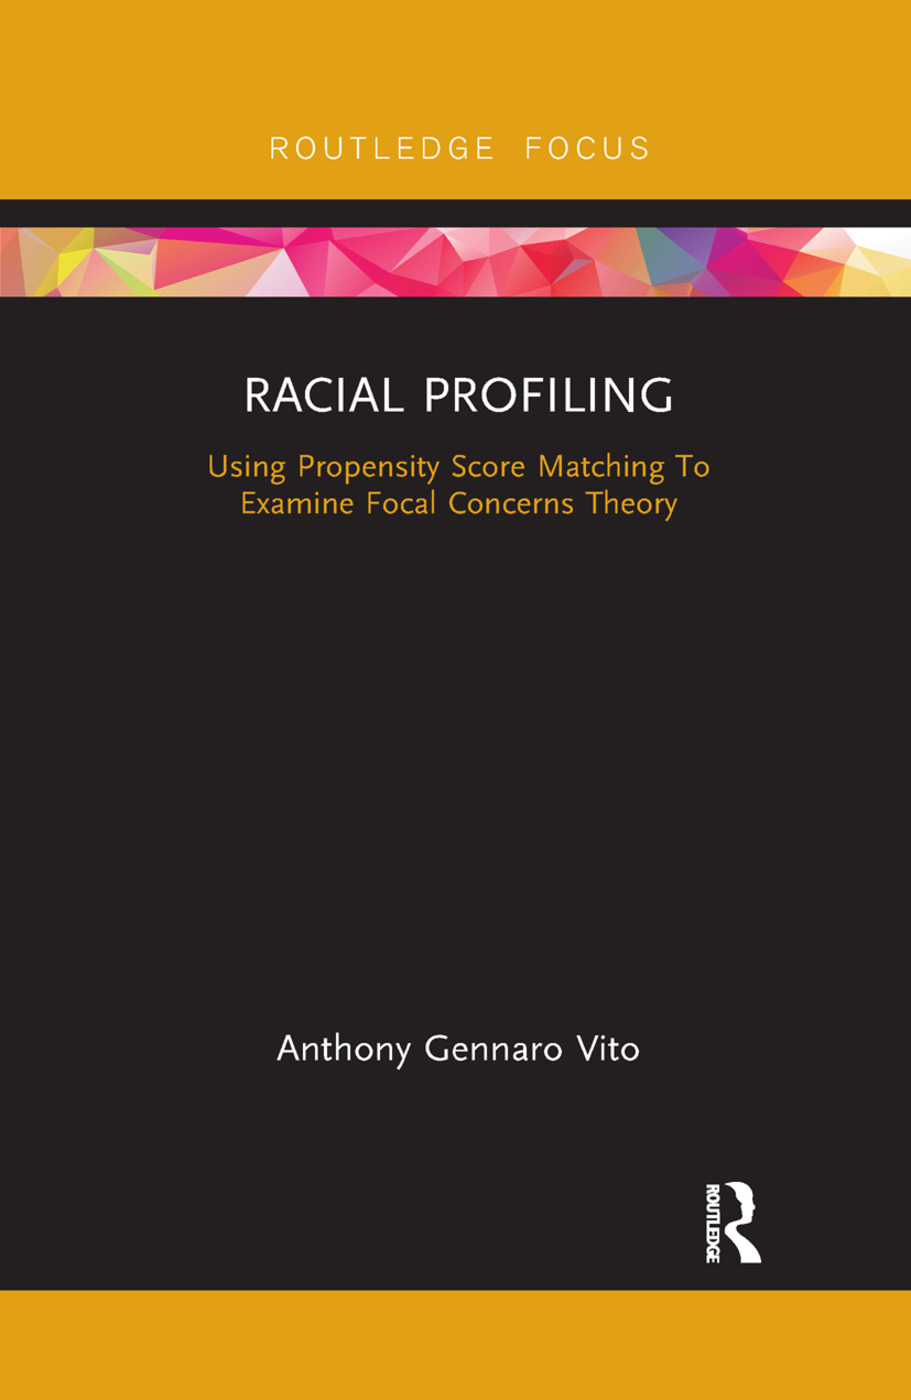 Racial Profiling: Using Propensity Score Matching To Examine Focal Concerns Theory book cover